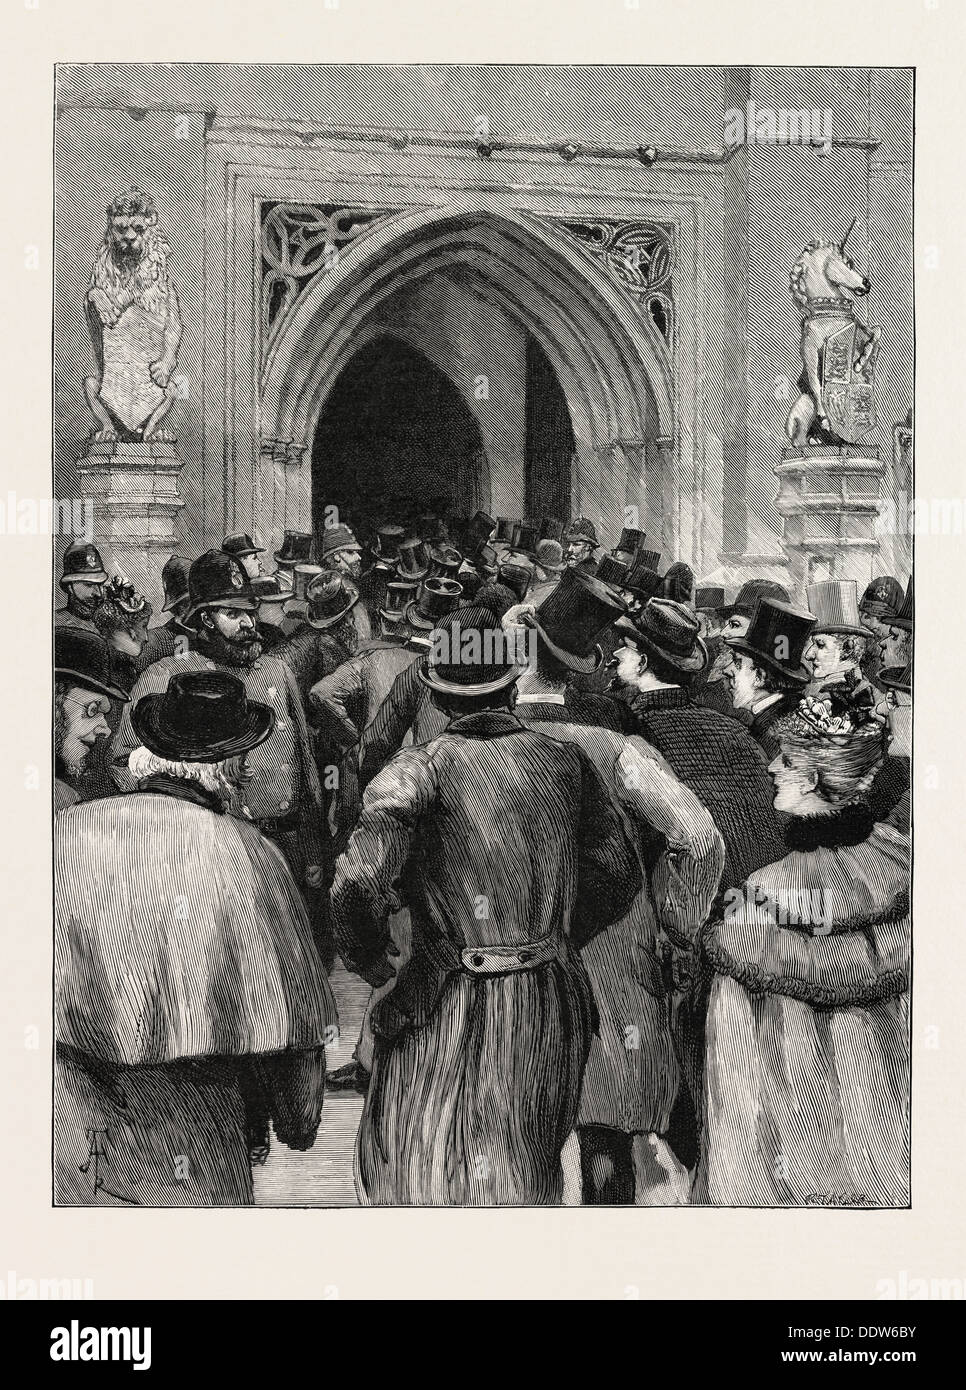 THE GREAT HOME RULE DEBATE: SCENE AT THE DOOR OF THE HOUSE OF COMMONS, UK, 1893, 1893 engraving - Stock Image